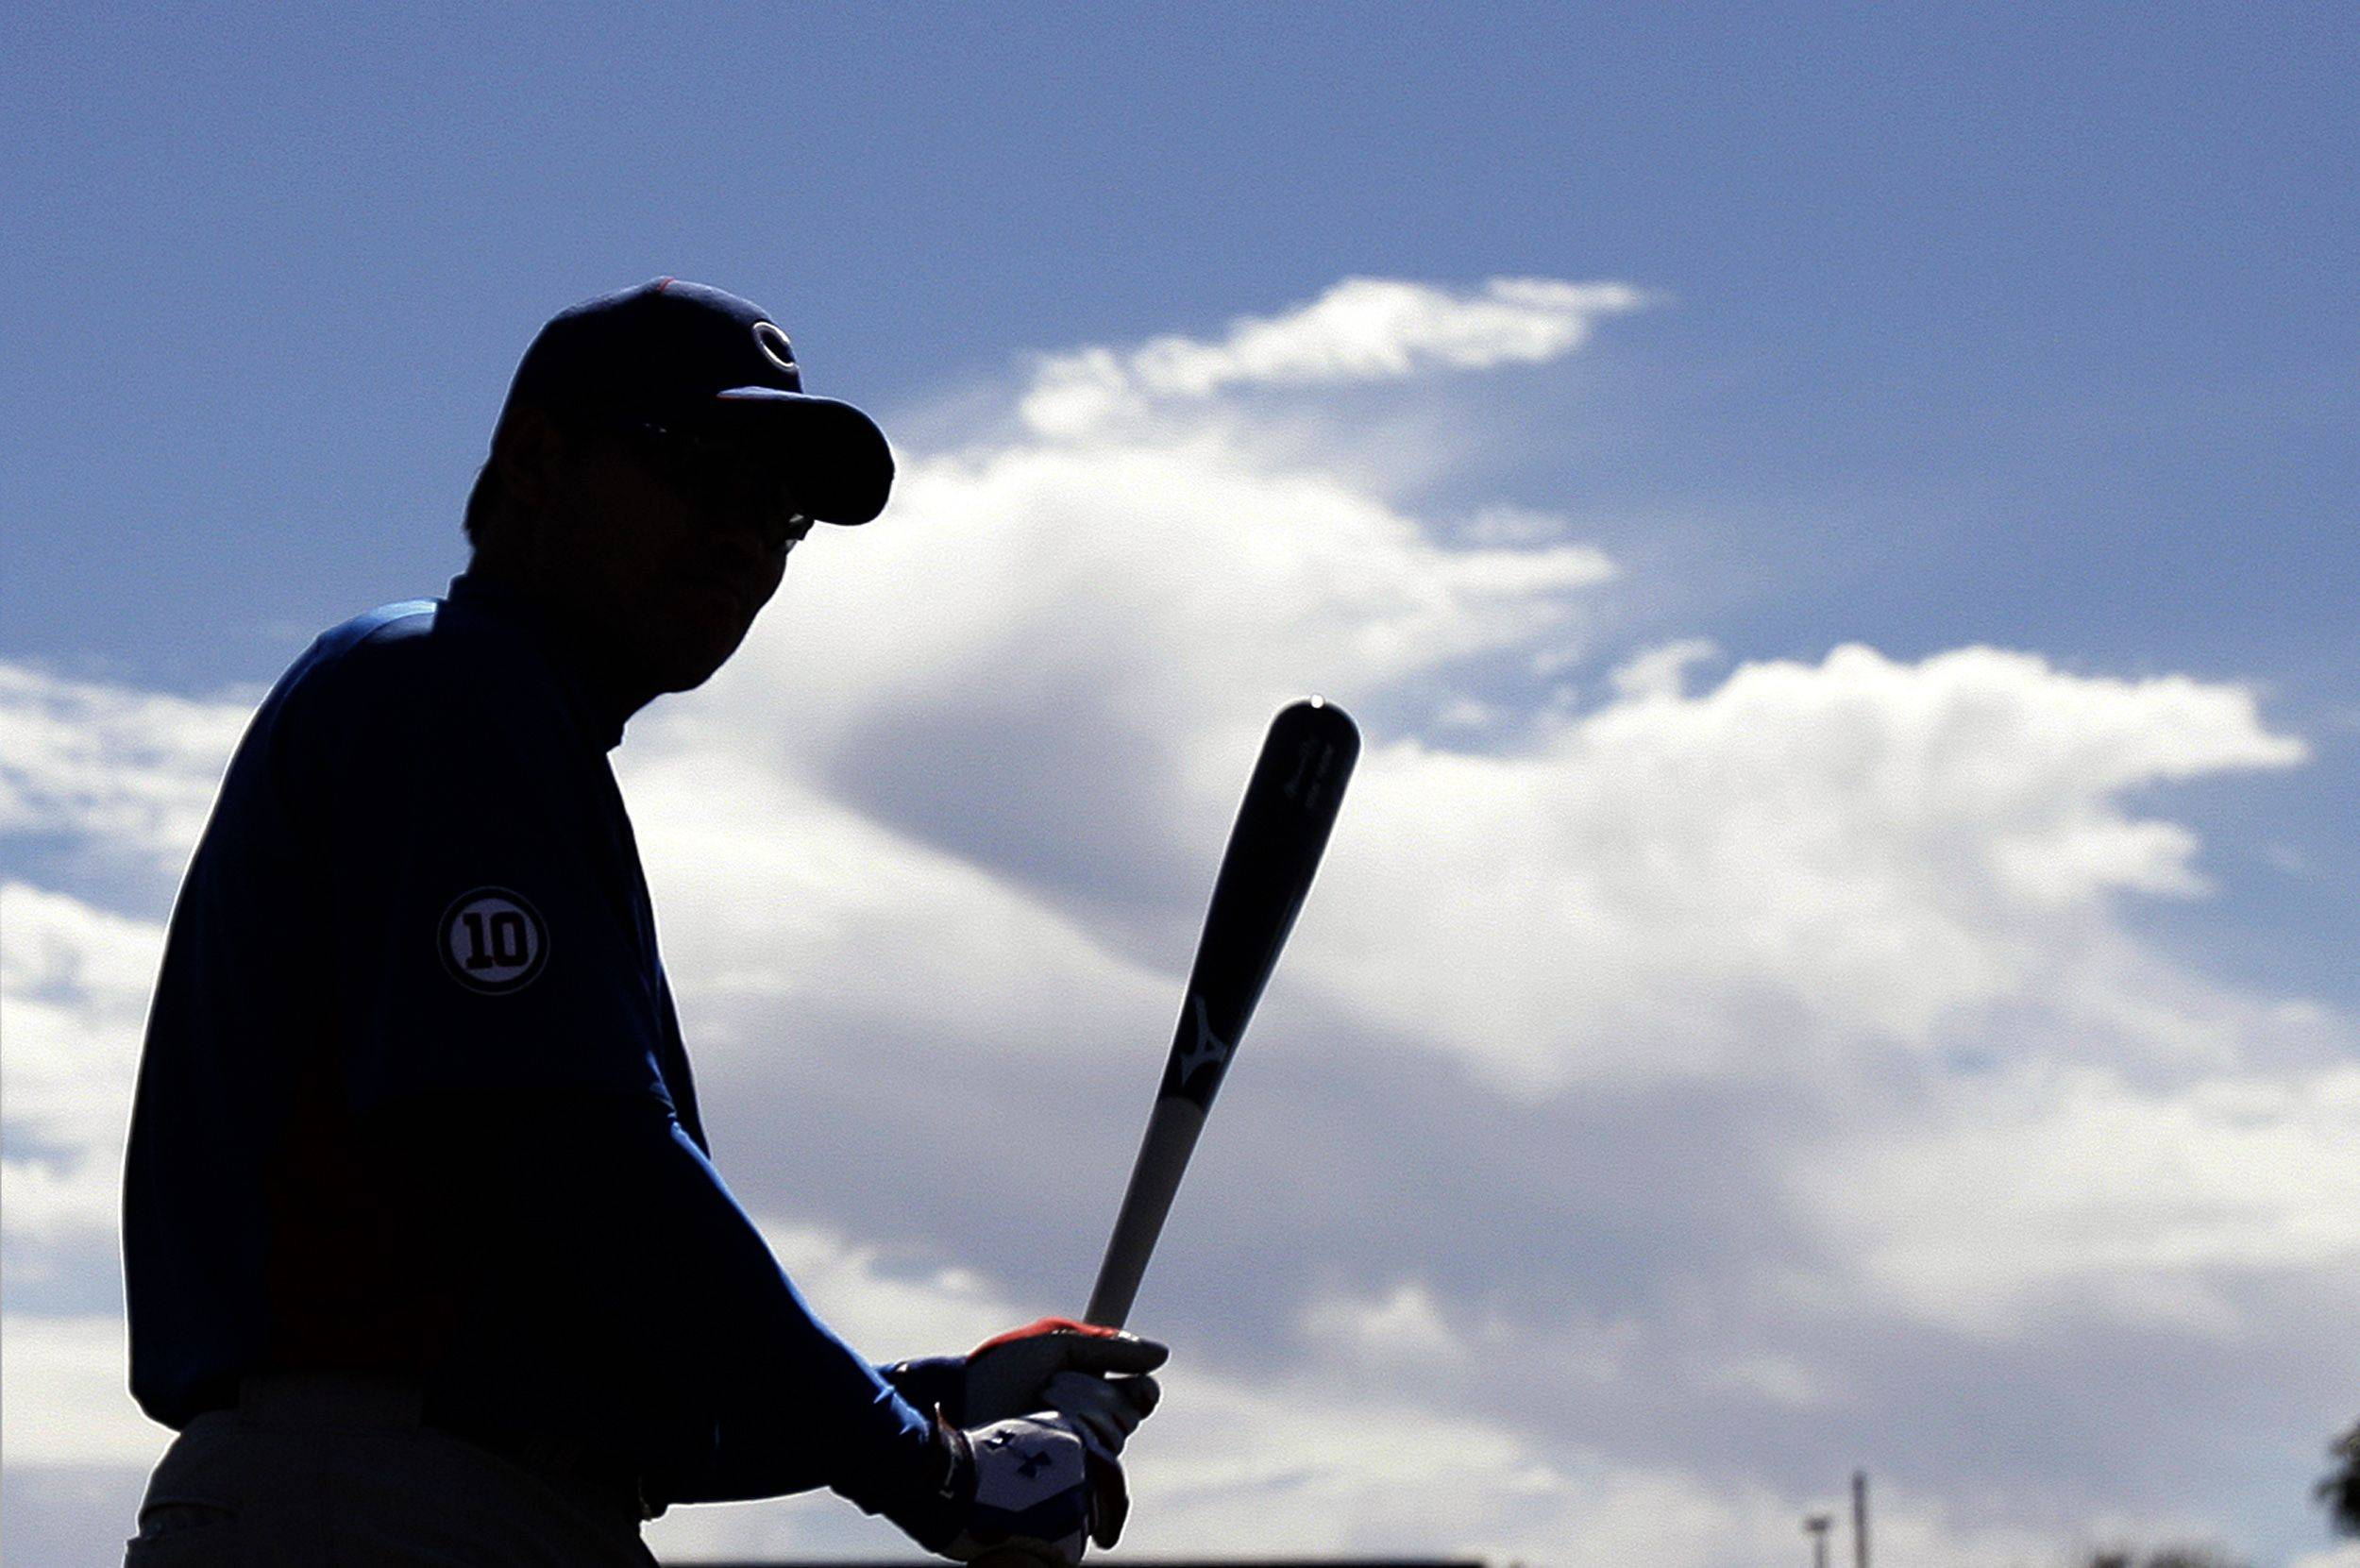 Chicago Cubs outfielder Kosuke Fukudome, of Japan, swings a bat under clearing skies following two days of rain, during baseball spring training Monday, Feb. 21, 2011, in Mesa, Ariz.